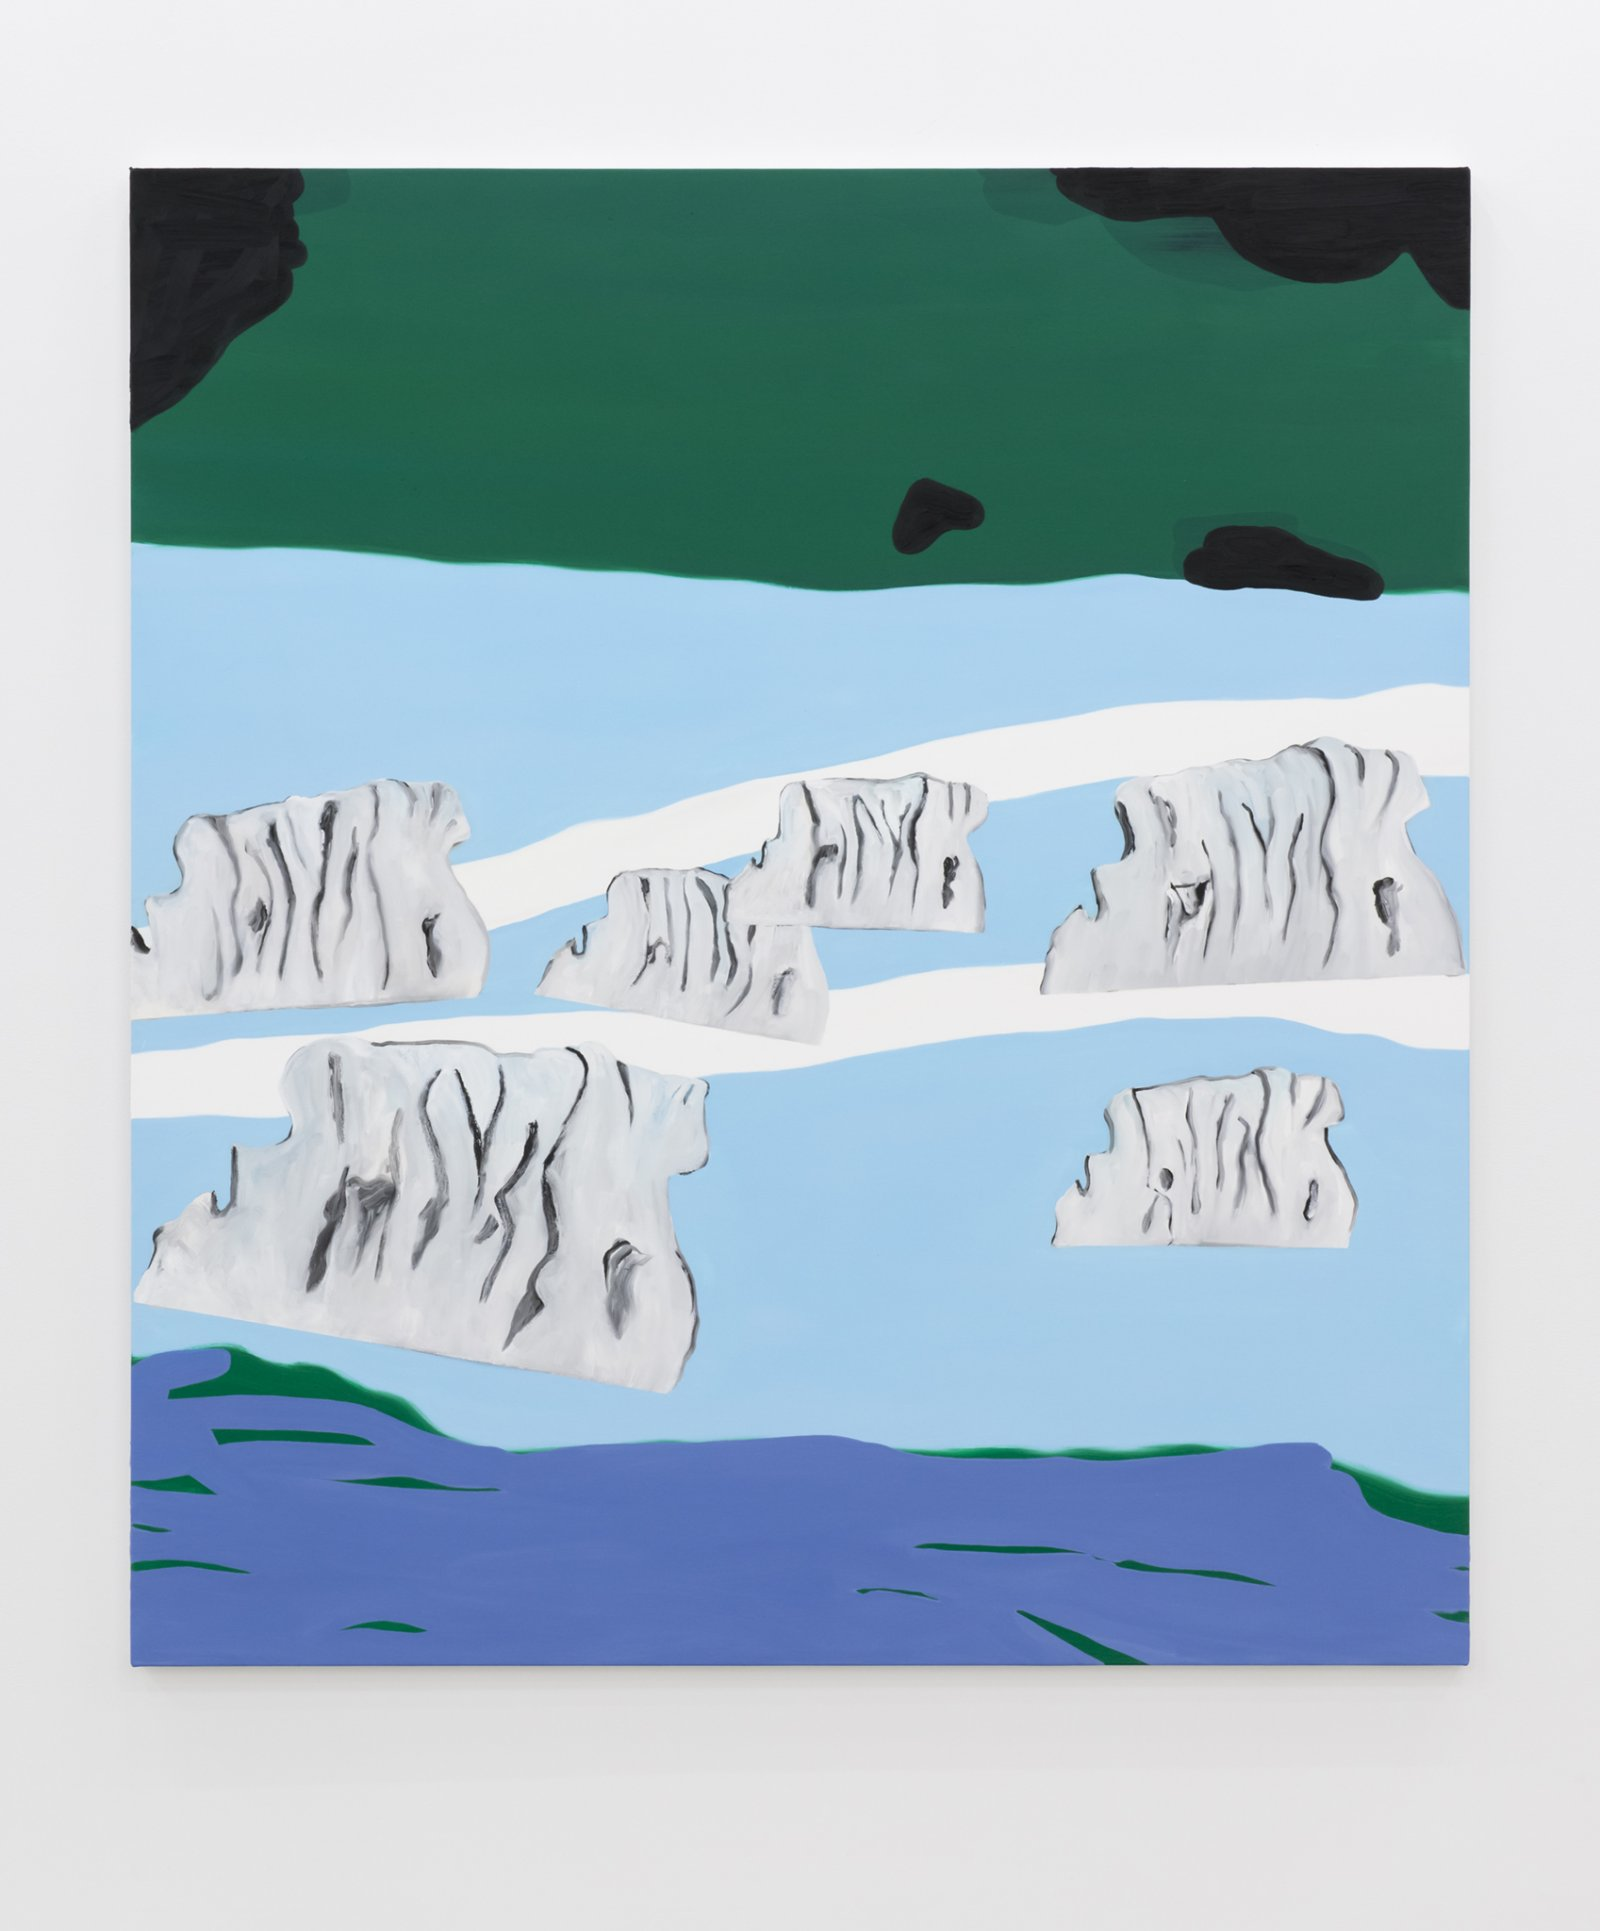 ​Elizabeth McIntosh, Icebergs, 2017, oil on canvas, 73 x 65 in. (186 x 165 cm) by Elizabeth McIntosh